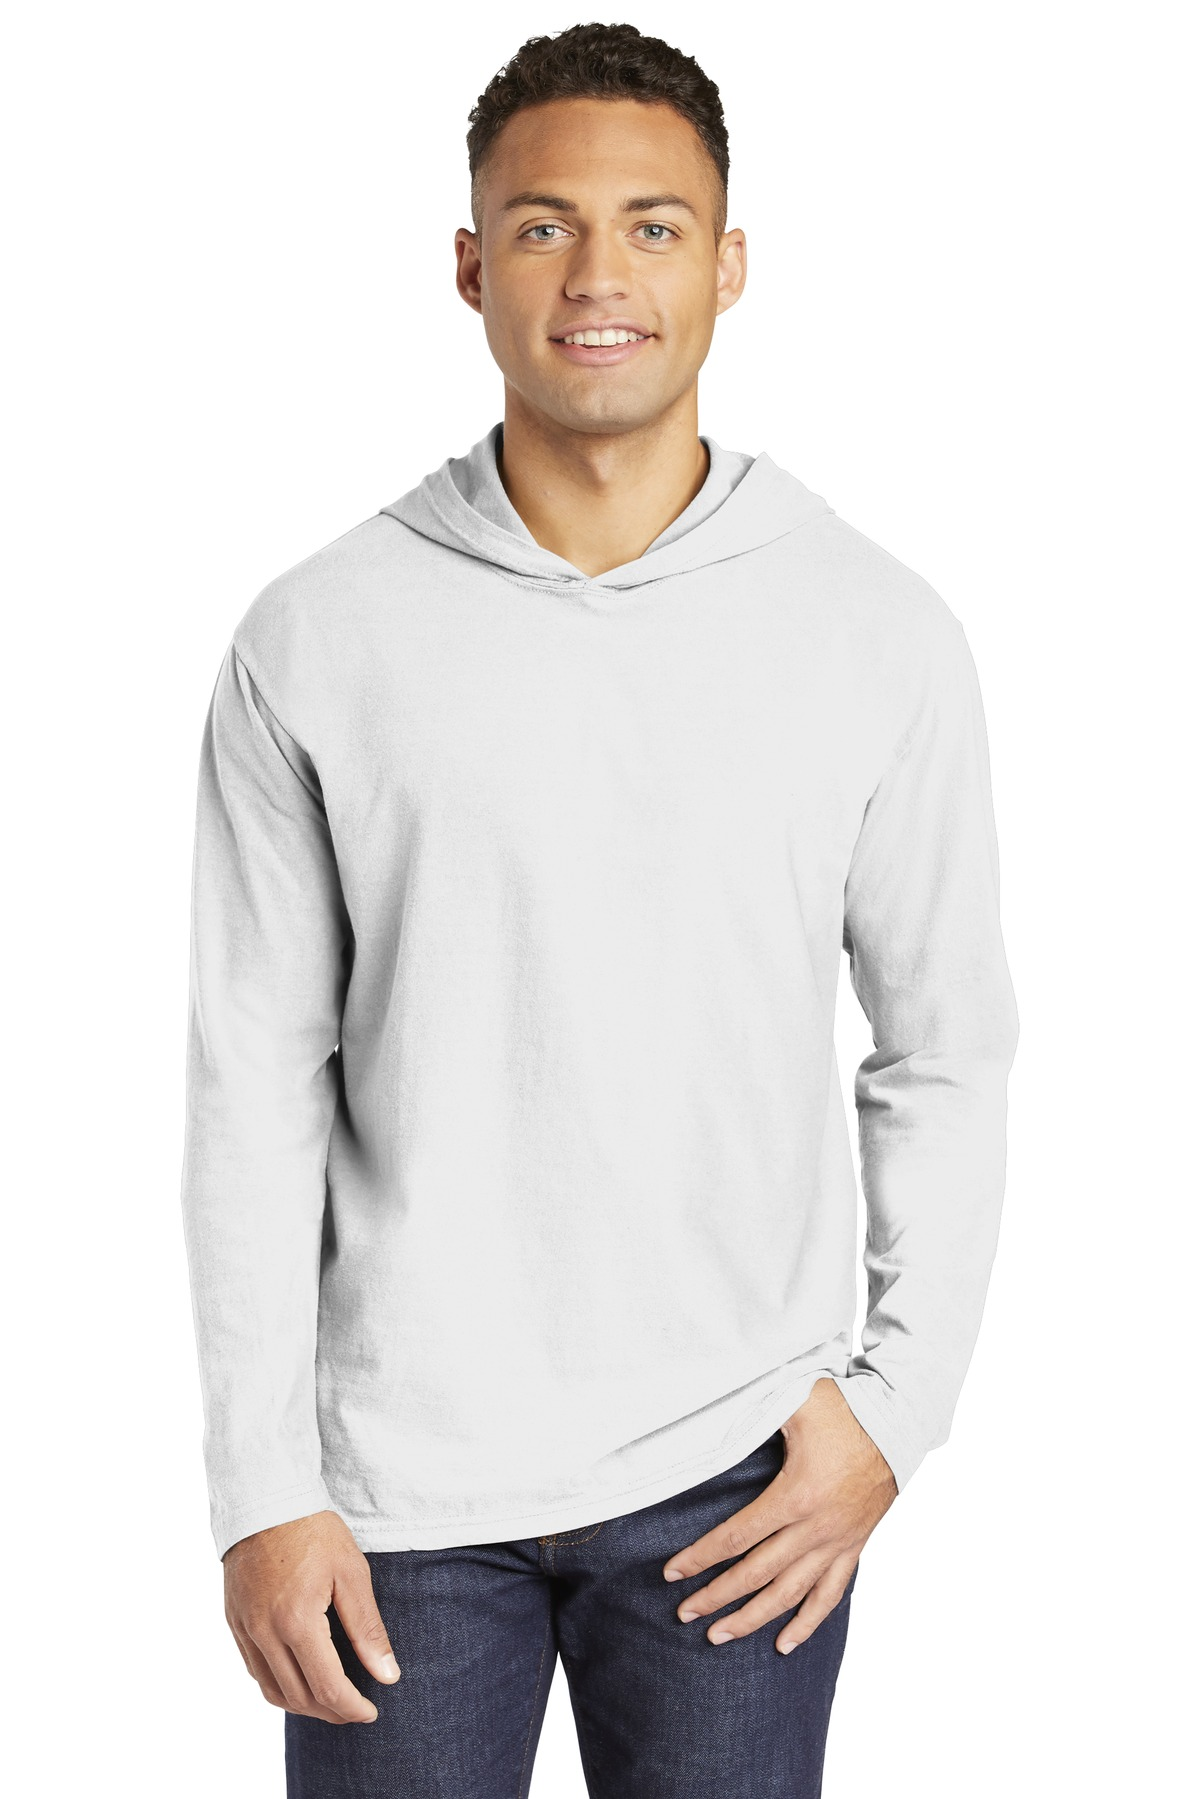 COMFORT COLORS  ®  Heavyweight Ring Spun Long Sleeve Hooded Tee. 4900 - White